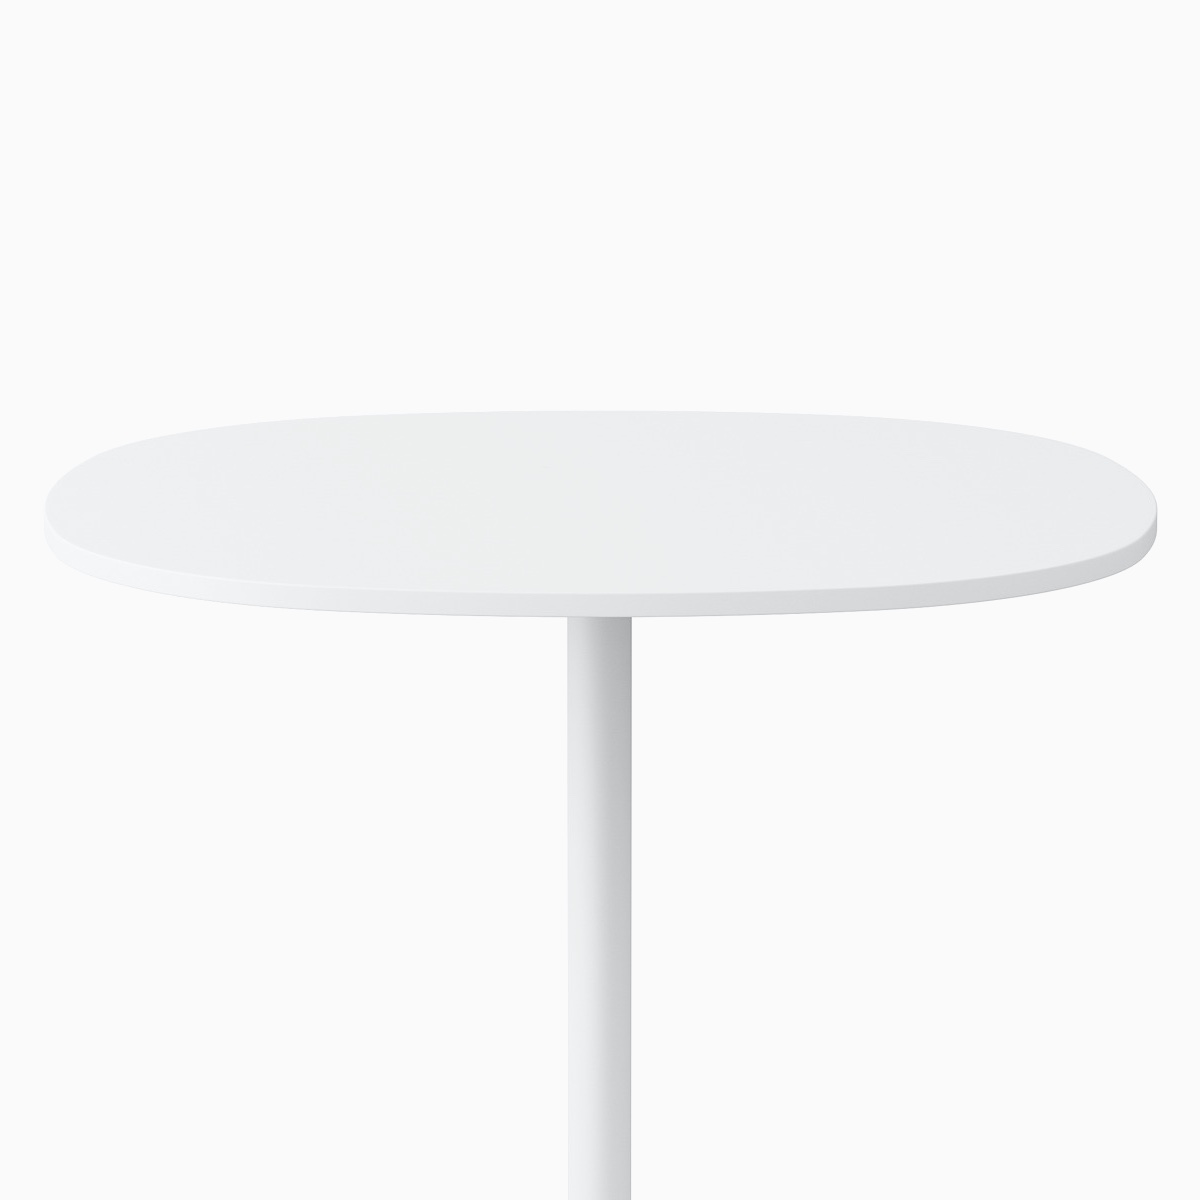 A soft square white Civic Table with a square edge at standing height.